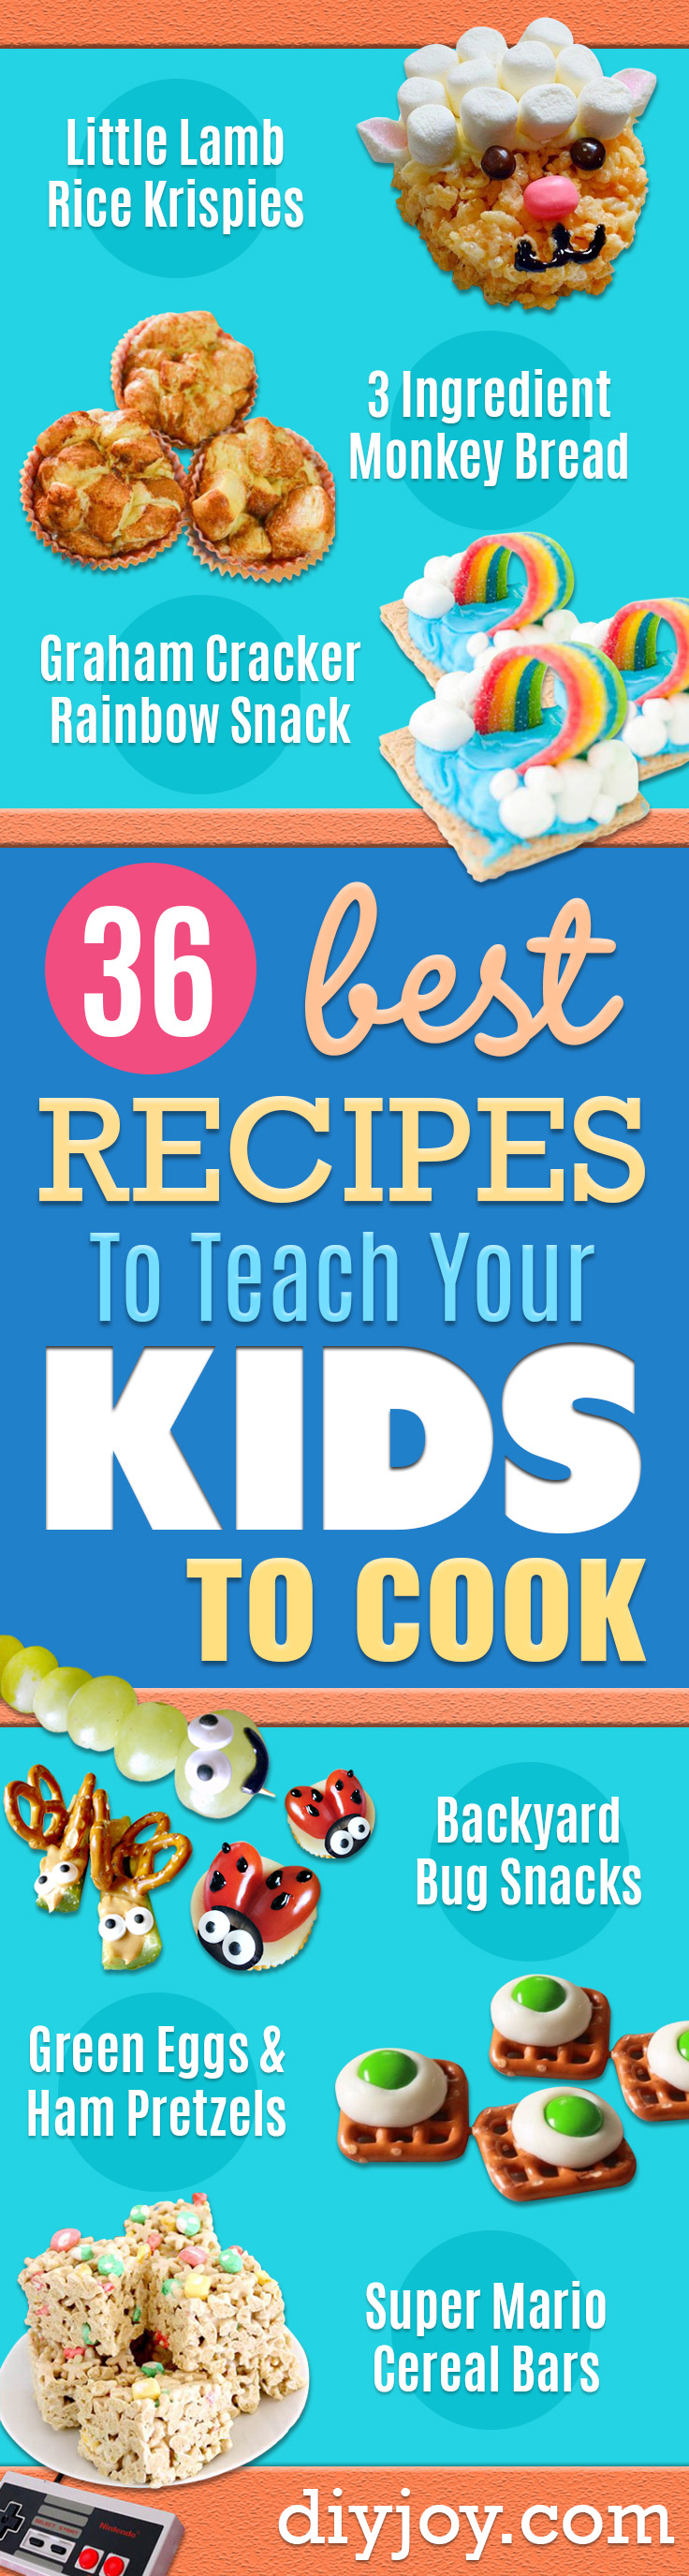 Best Recipes To Teach Your Kids To Cook - Easy Ideas To Show Children How to Prepare Food - Kid Friendly Recipes That Boys and Girls Can Make Themselves - No Bake, 5 Minute Foods, Healthy Snacks, Salads, Dips, Roll Ups, Vegetables and Simple Desserts - Recipes To Learn How To Make Fun Food http://diyjoy.com/best-recipes-teach-kids-to-cook